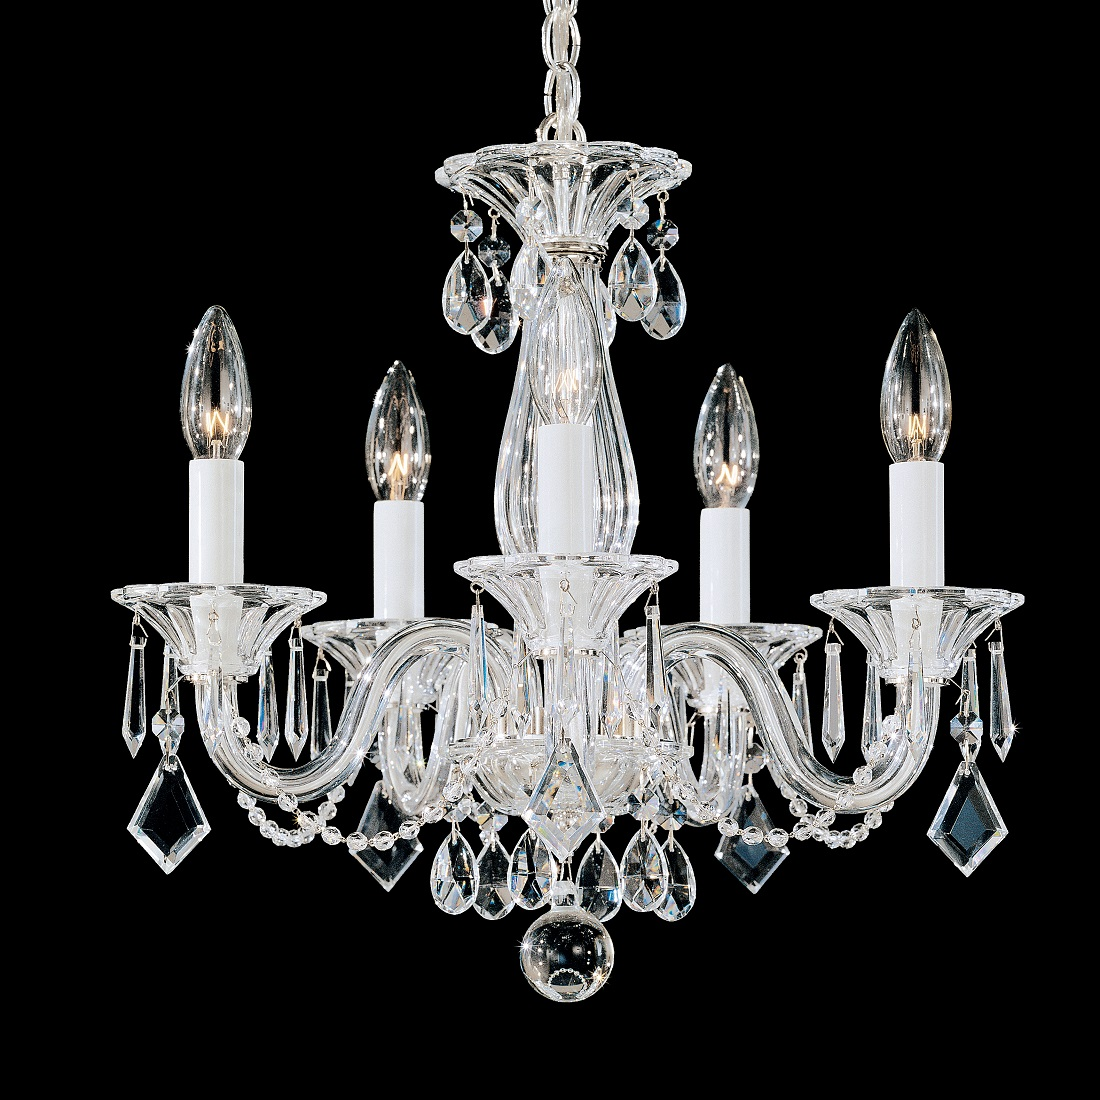 Schonbek Modern Crystal Chandelier for Dining Room